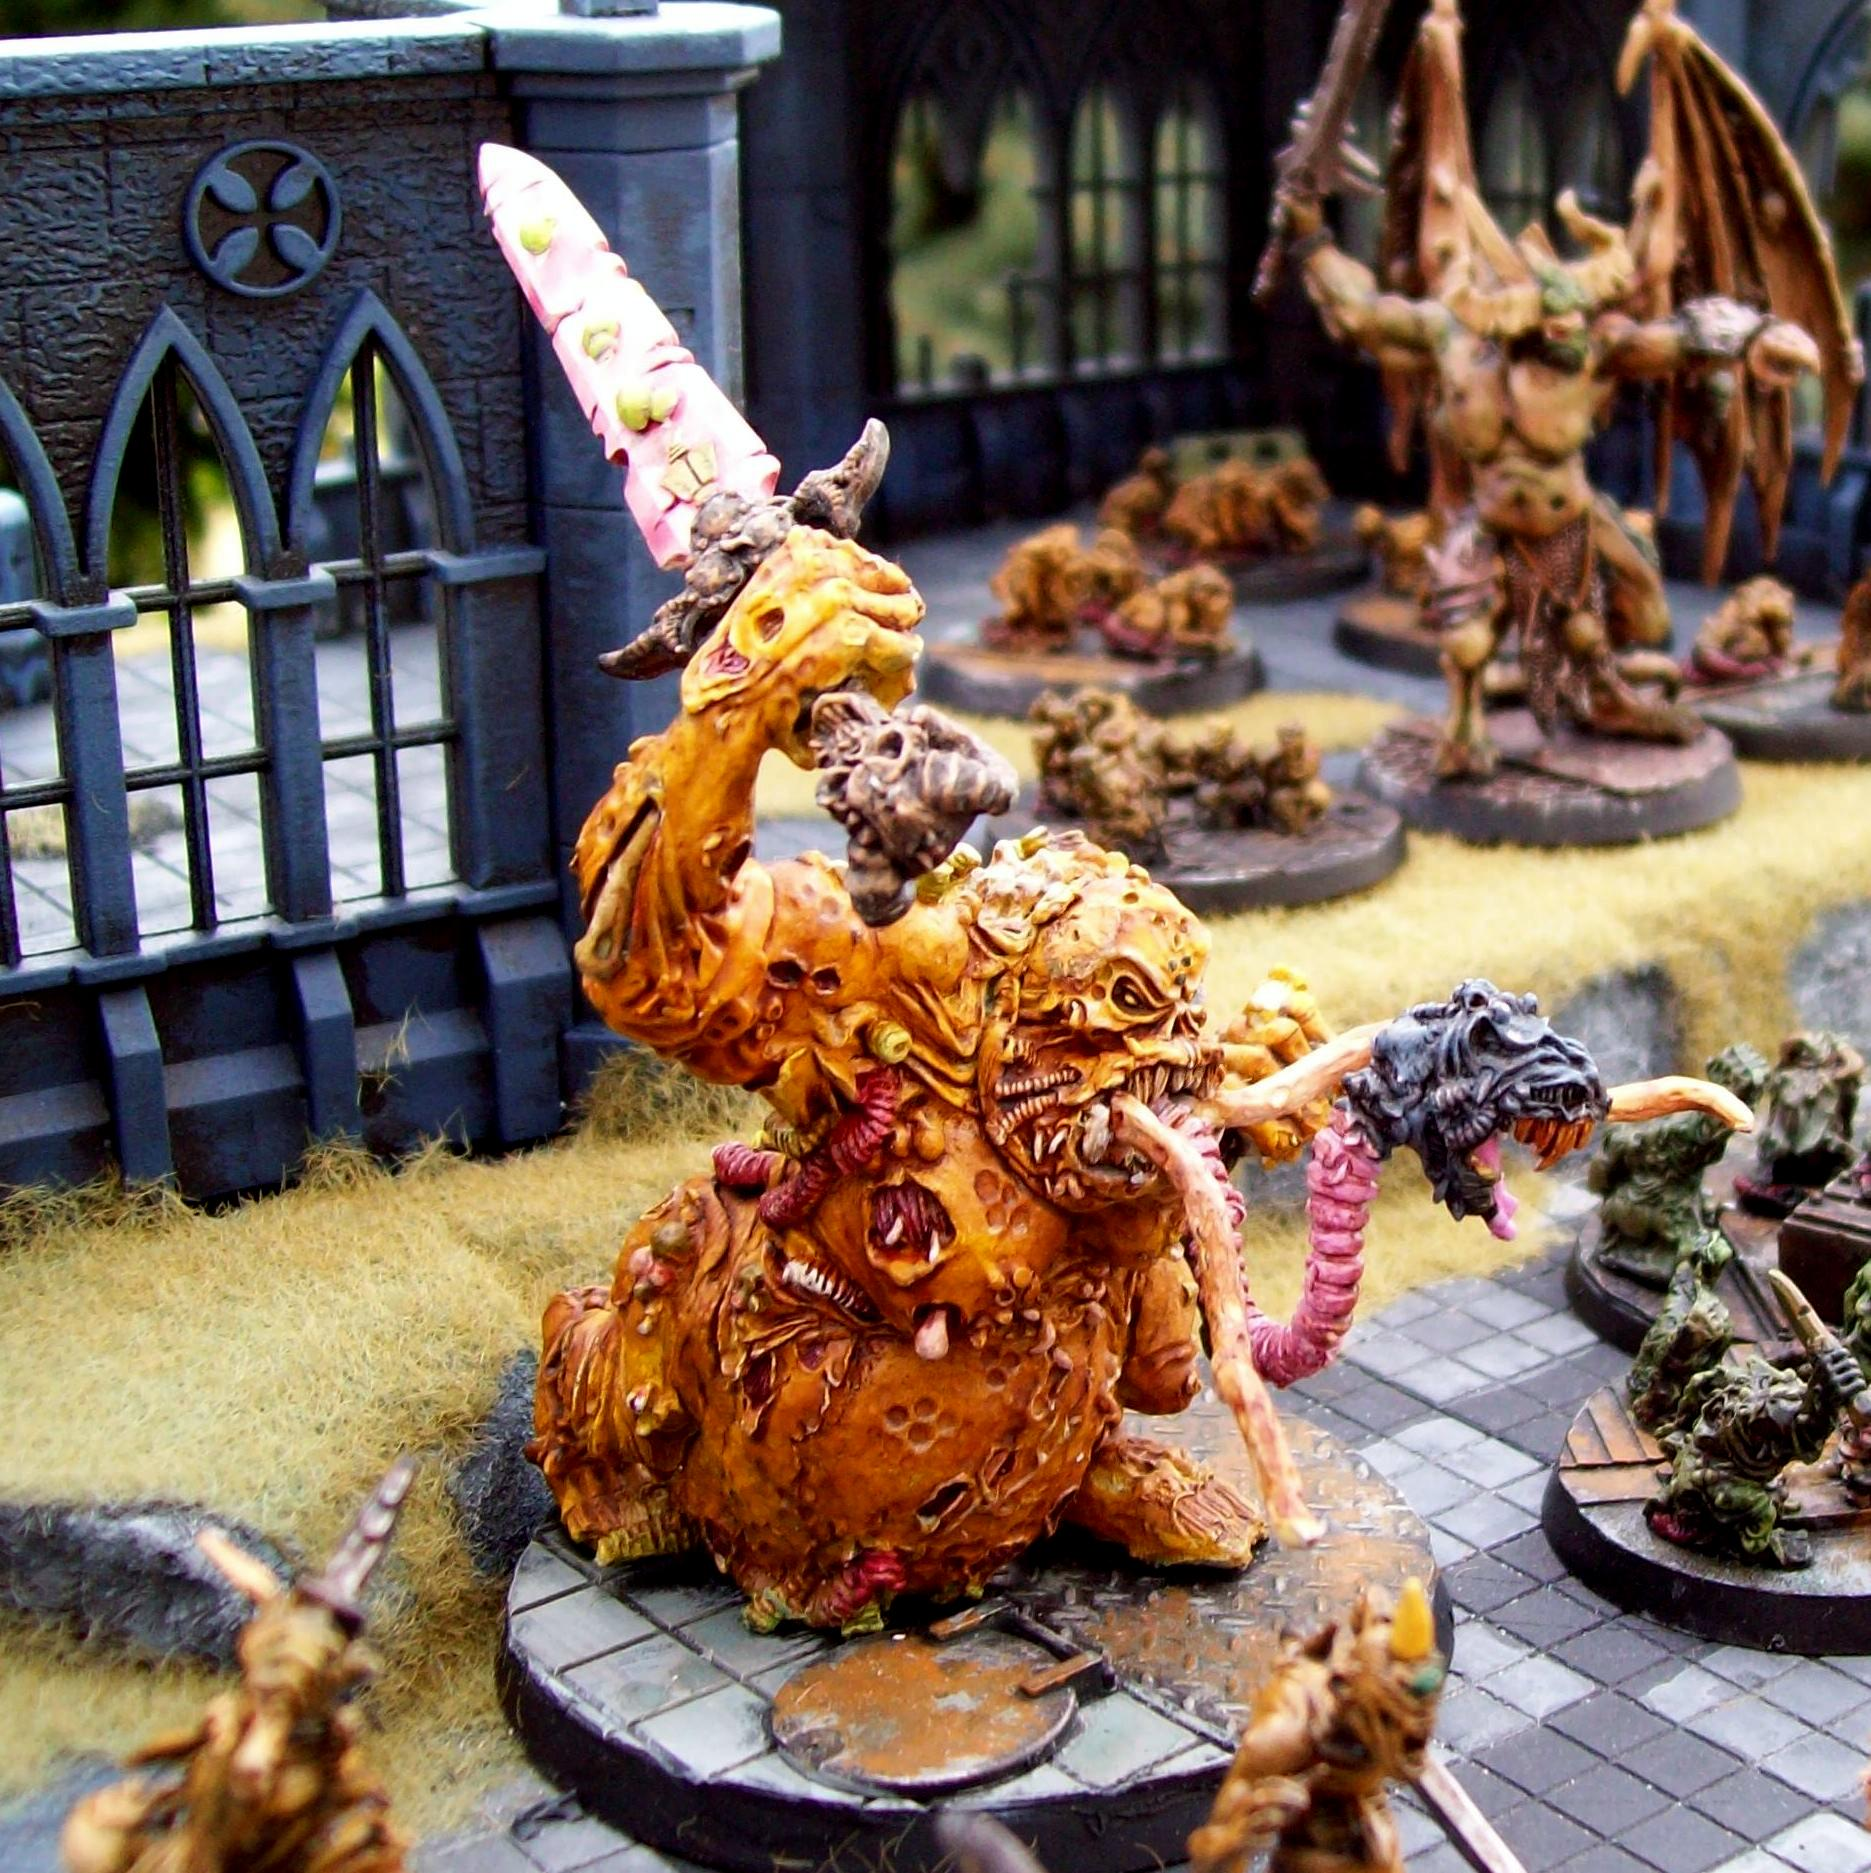 Chaos Daemons, Great Unclean One, Nurgle